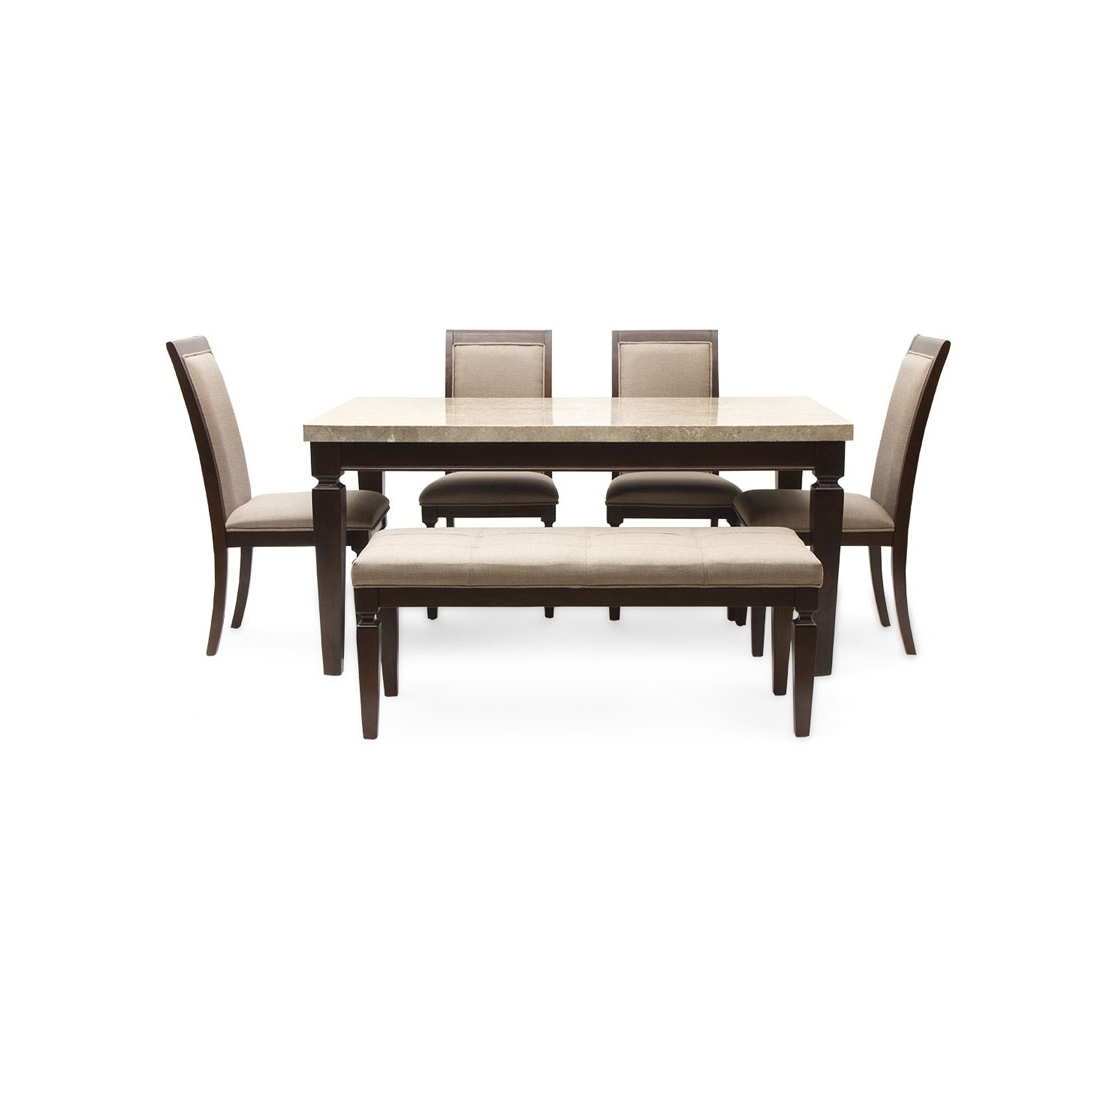 Most Recent Bliss Marble Top 6 Seater Dining Table – Gunjan Furnitures Jaipur Regarding 6 Seater Dining Tables (View 22 of 25)